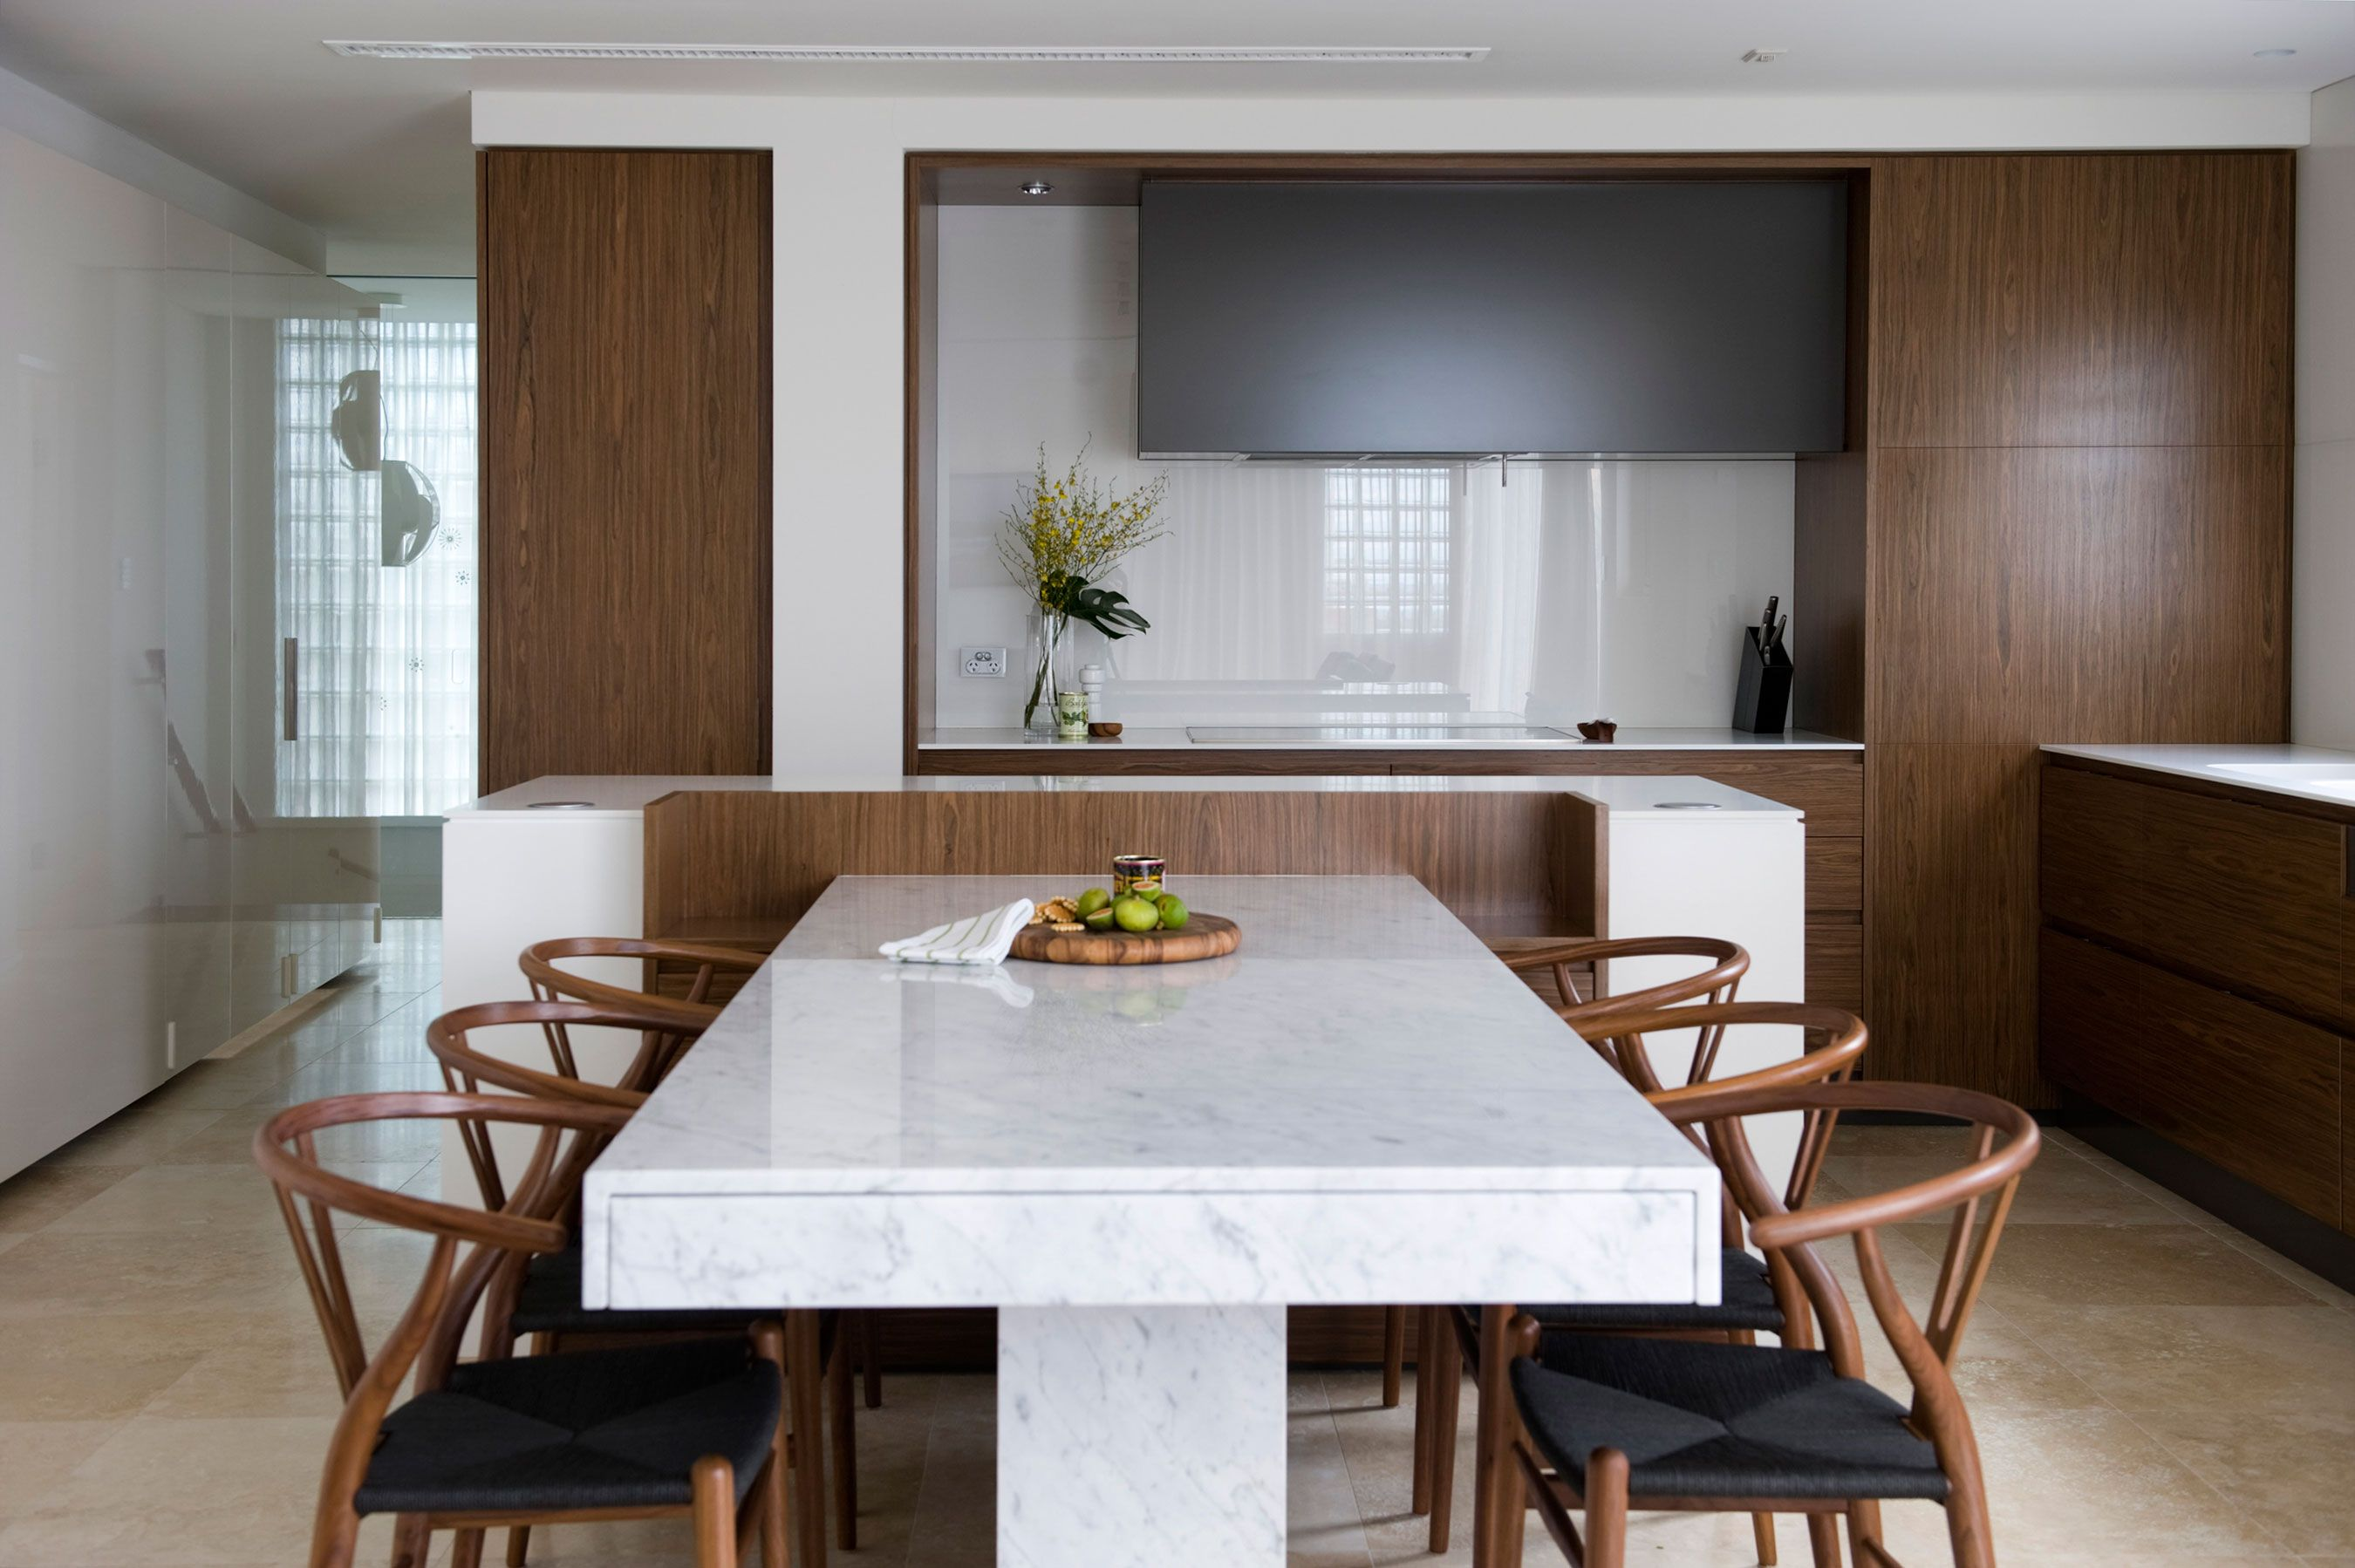 Space Solutions By Minosa Design 7 Kitchen Island With Table Attached Dining Table Marble Kitchen Island Dining Table